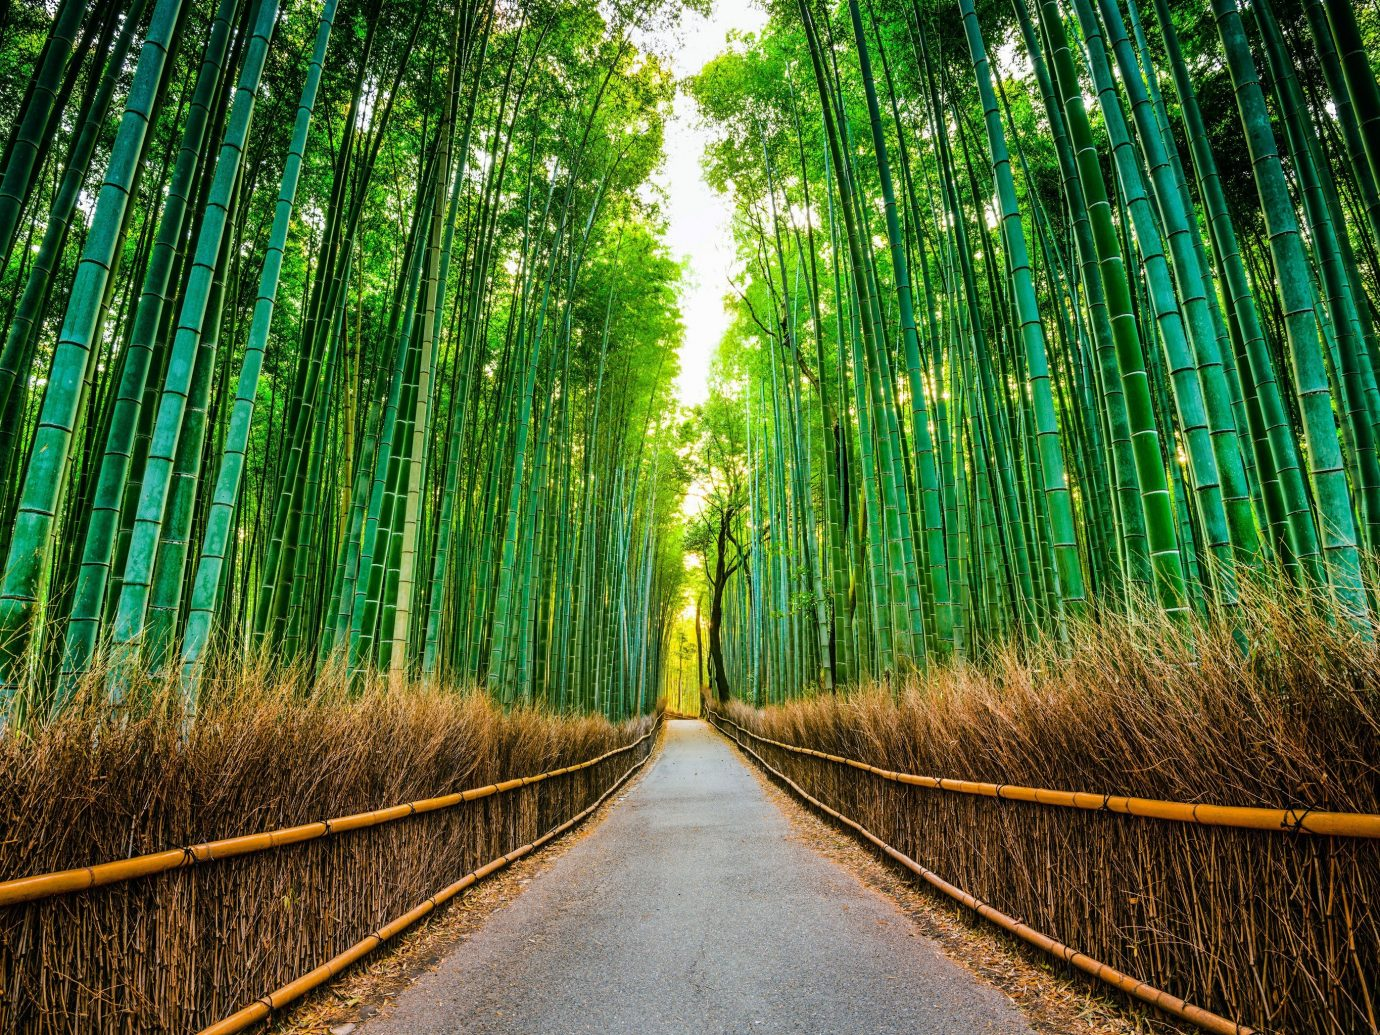 Trip Ideas habitat green Nature tree Forest natural environment plant light sunlight leaf woodland grass woody plant bamboo field branch rural area Jungle autumn grass family rainforest broom colored